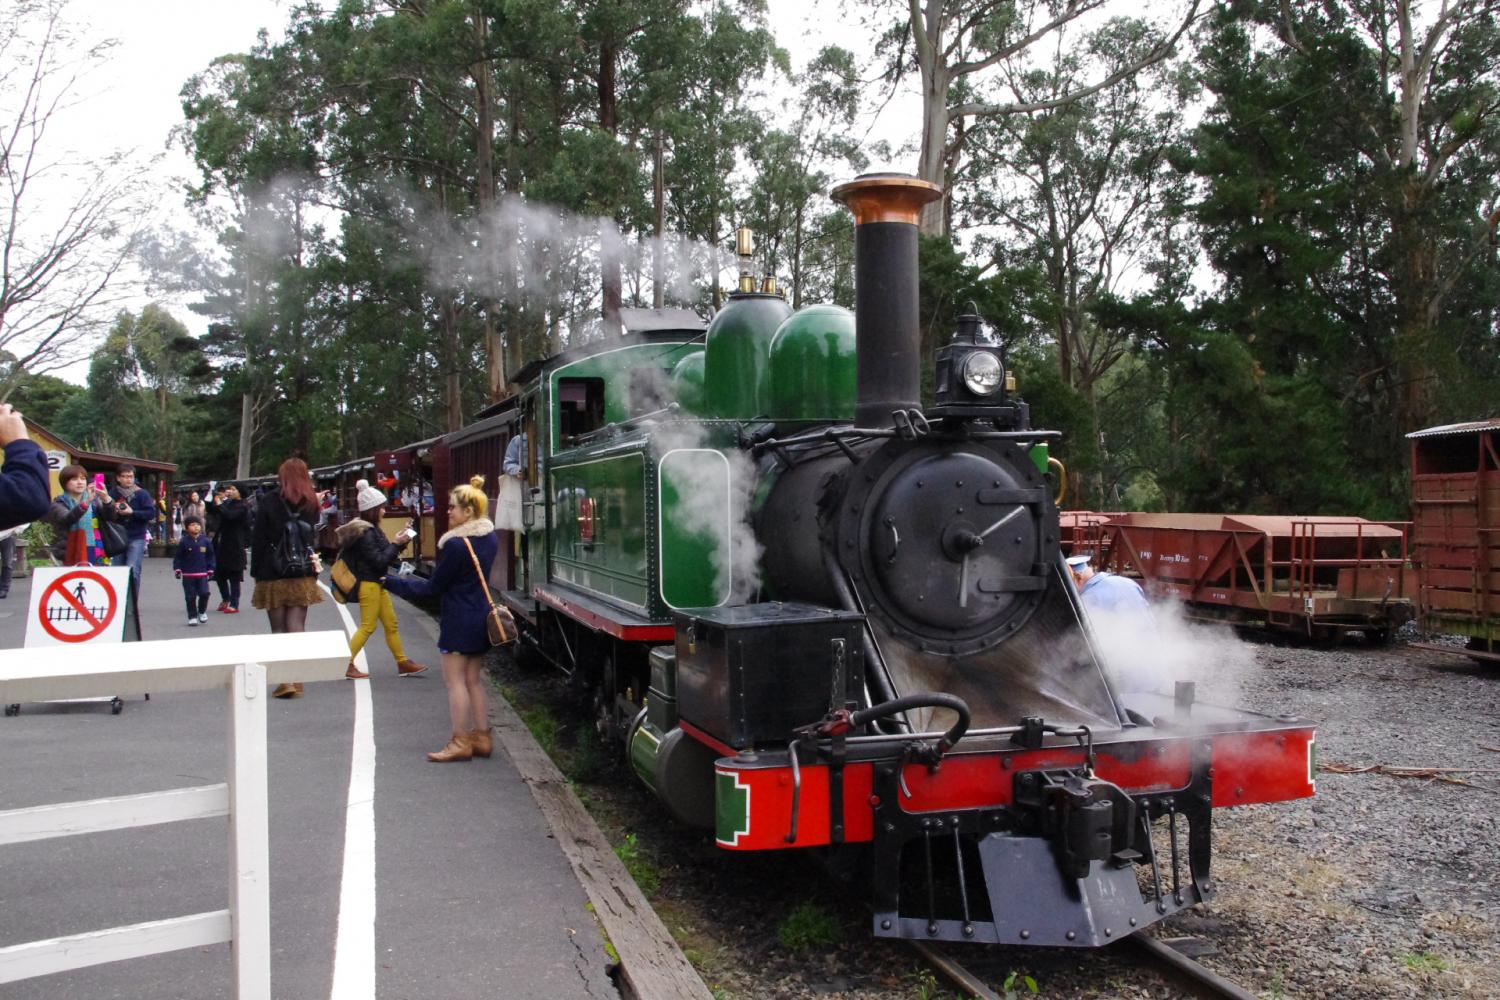 Puffing Billy Train Ride With Wildlife & Winery Lunch At Fergusson's Winery